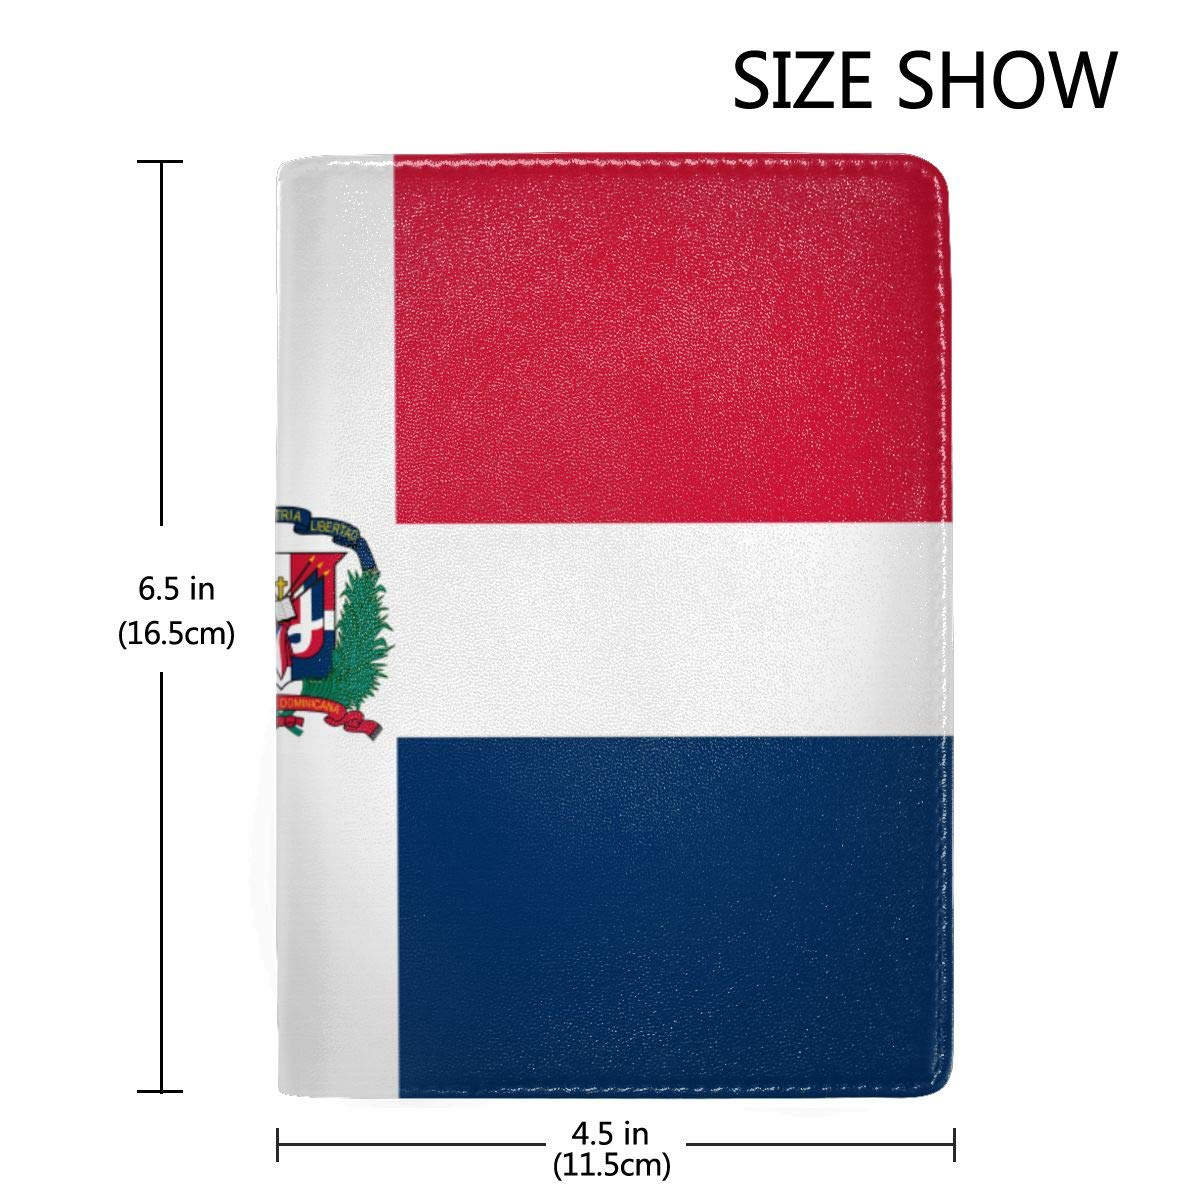 Dominican Republic Flag Fashion Leather Passport Holder Cover Case Travel Wallet 6.5 In